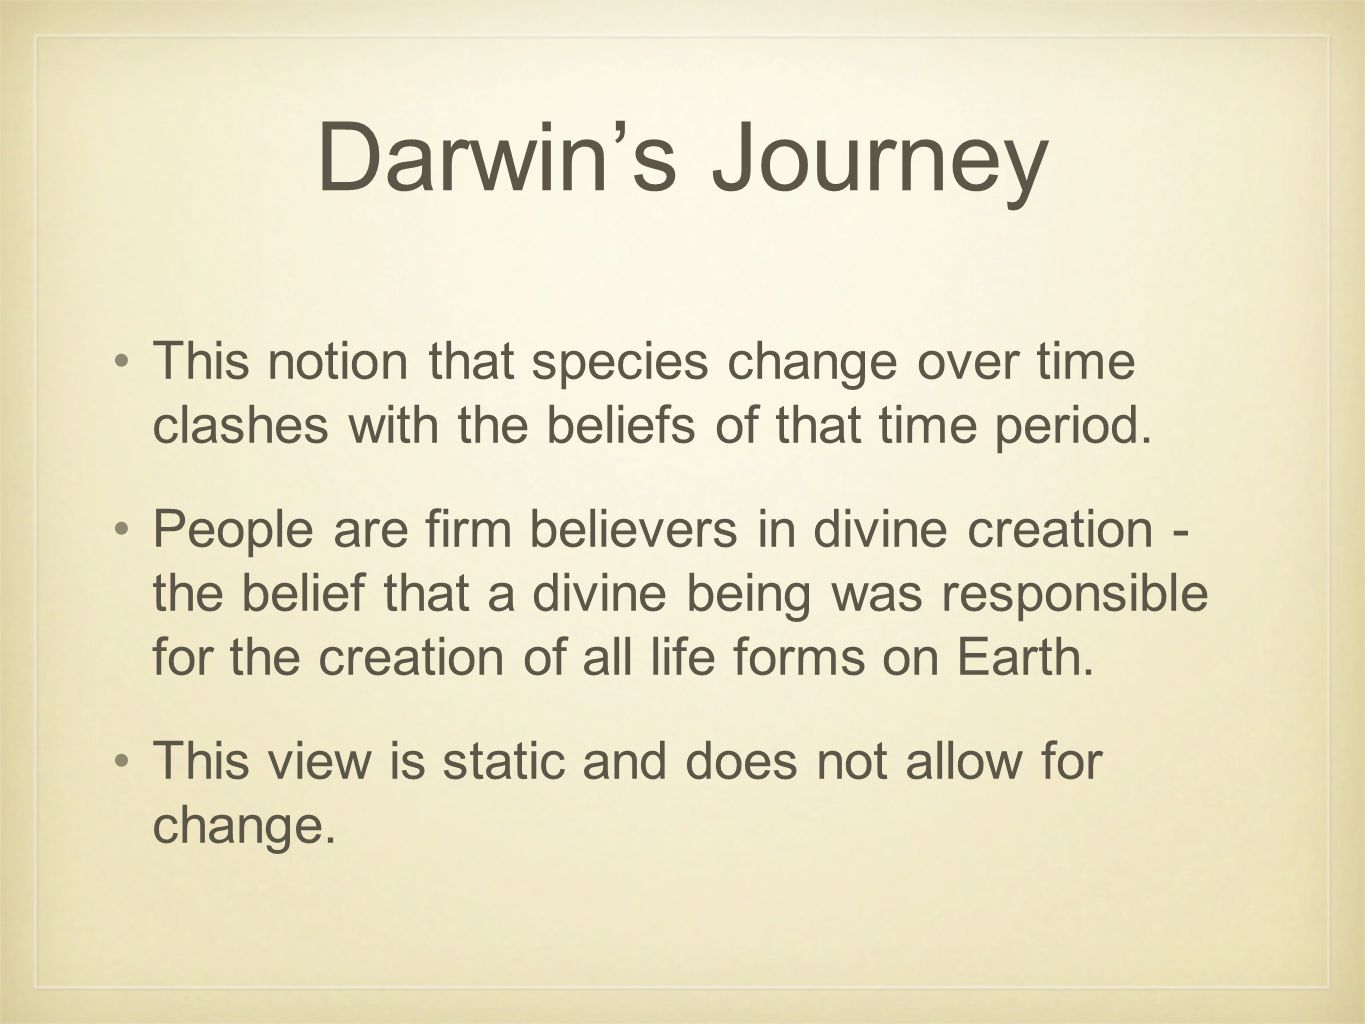 Darwin's Journey This notion that species change over time clashes with the beliefs of that time period. People are firm believers in divine creation